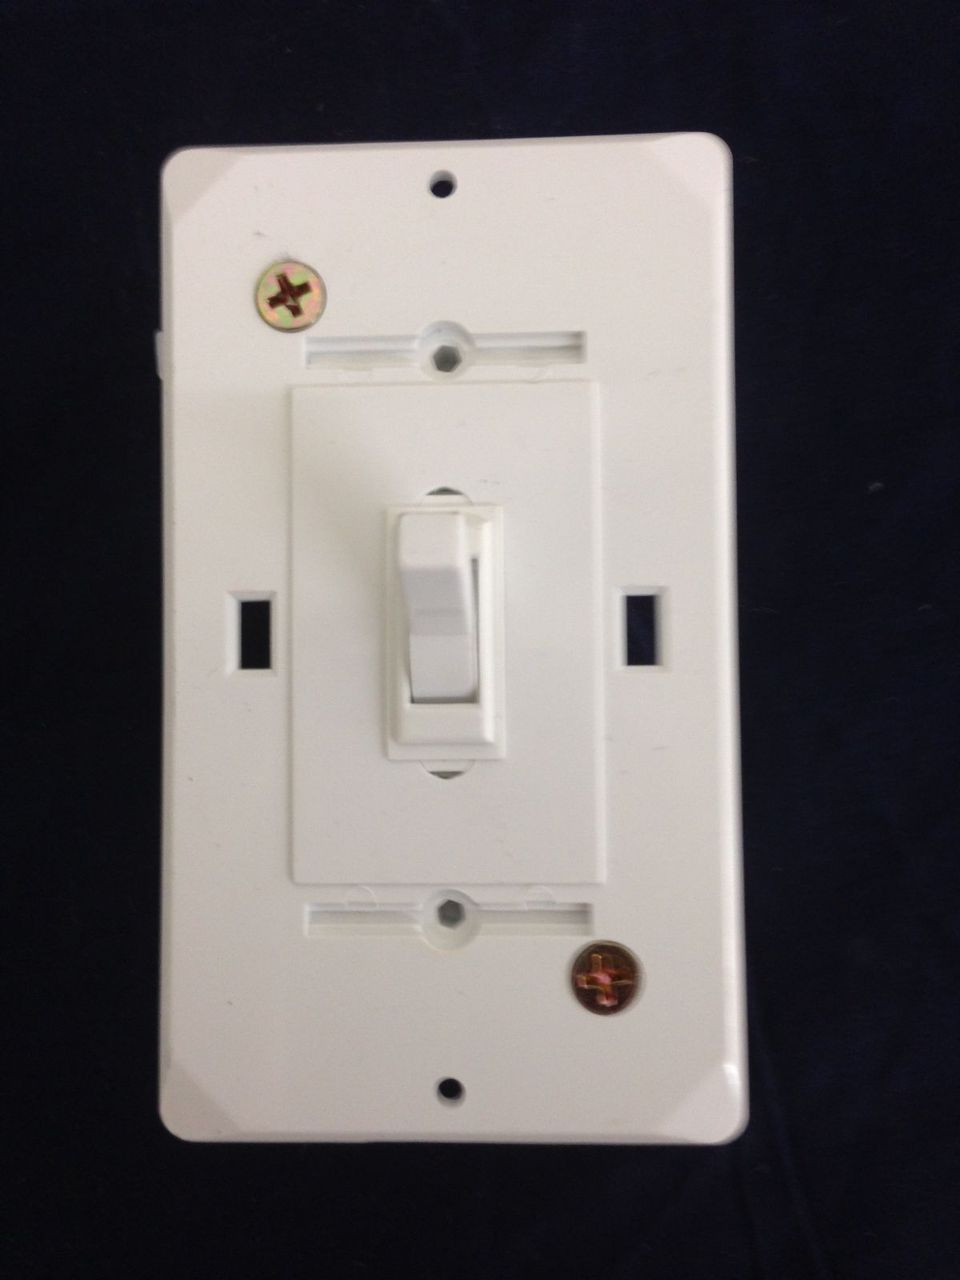 Mobile Home Self Contained Toggle Switch With Cover Plate